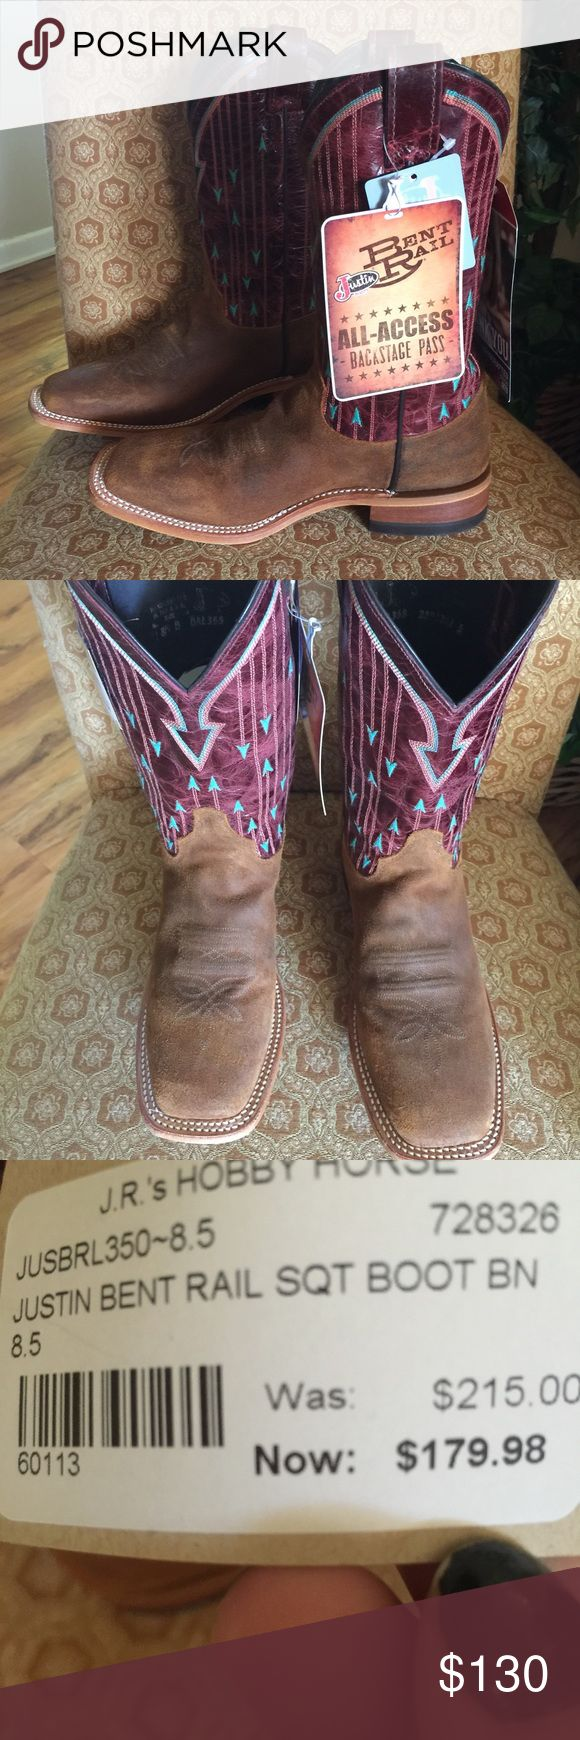 Justin Boots - New!! New with tags.  Never worn.  Still in box.  Purchased September 2016.  Cross-listed. Justin Boots Shoes